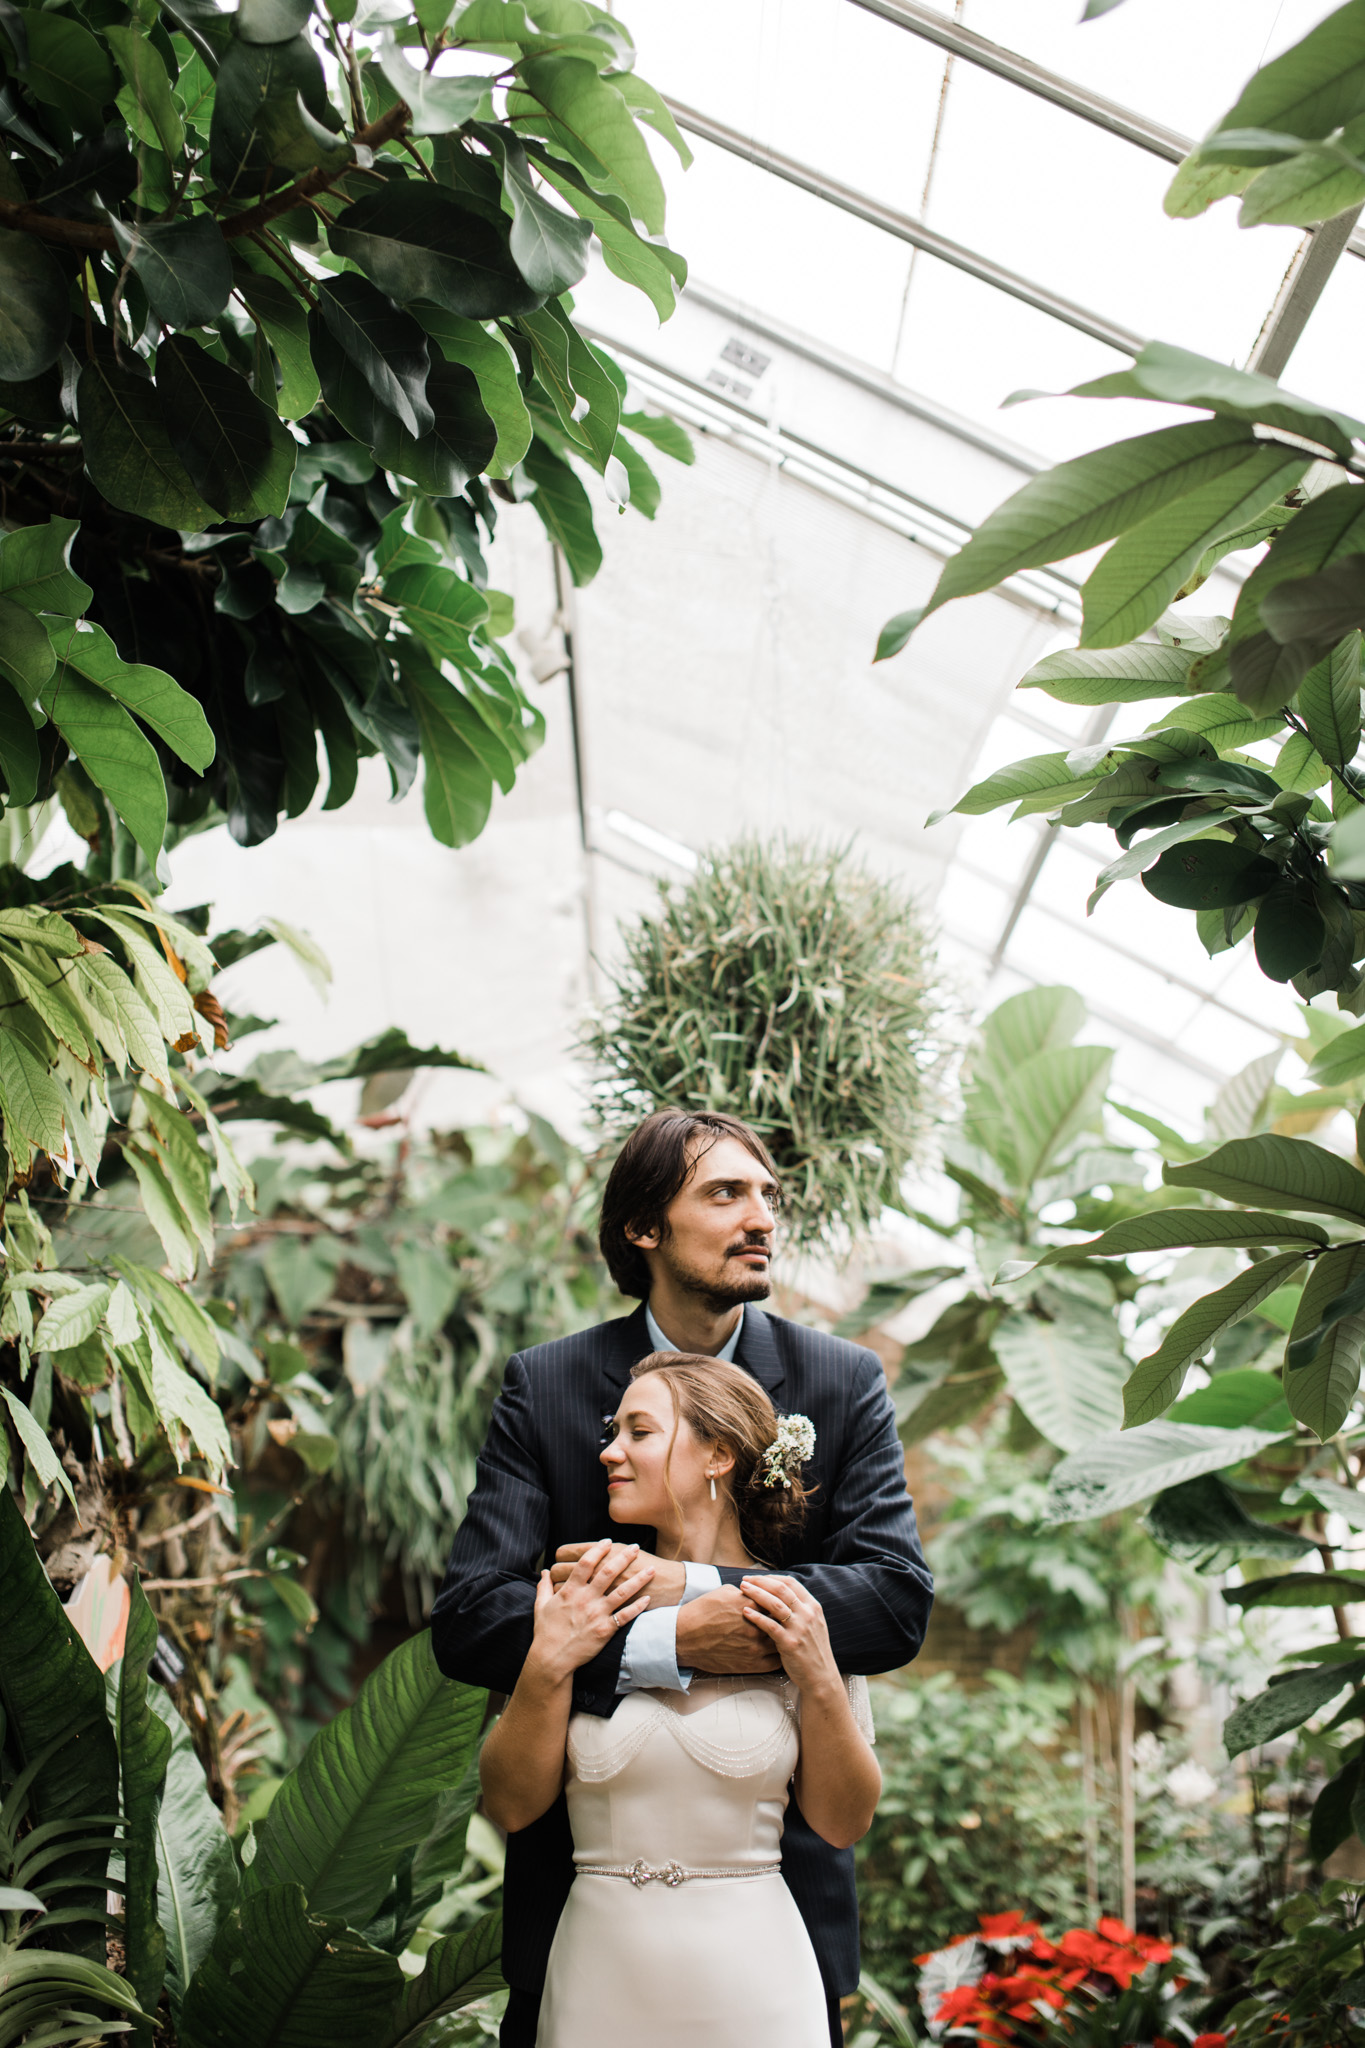 Leah&Jared-158.jpg